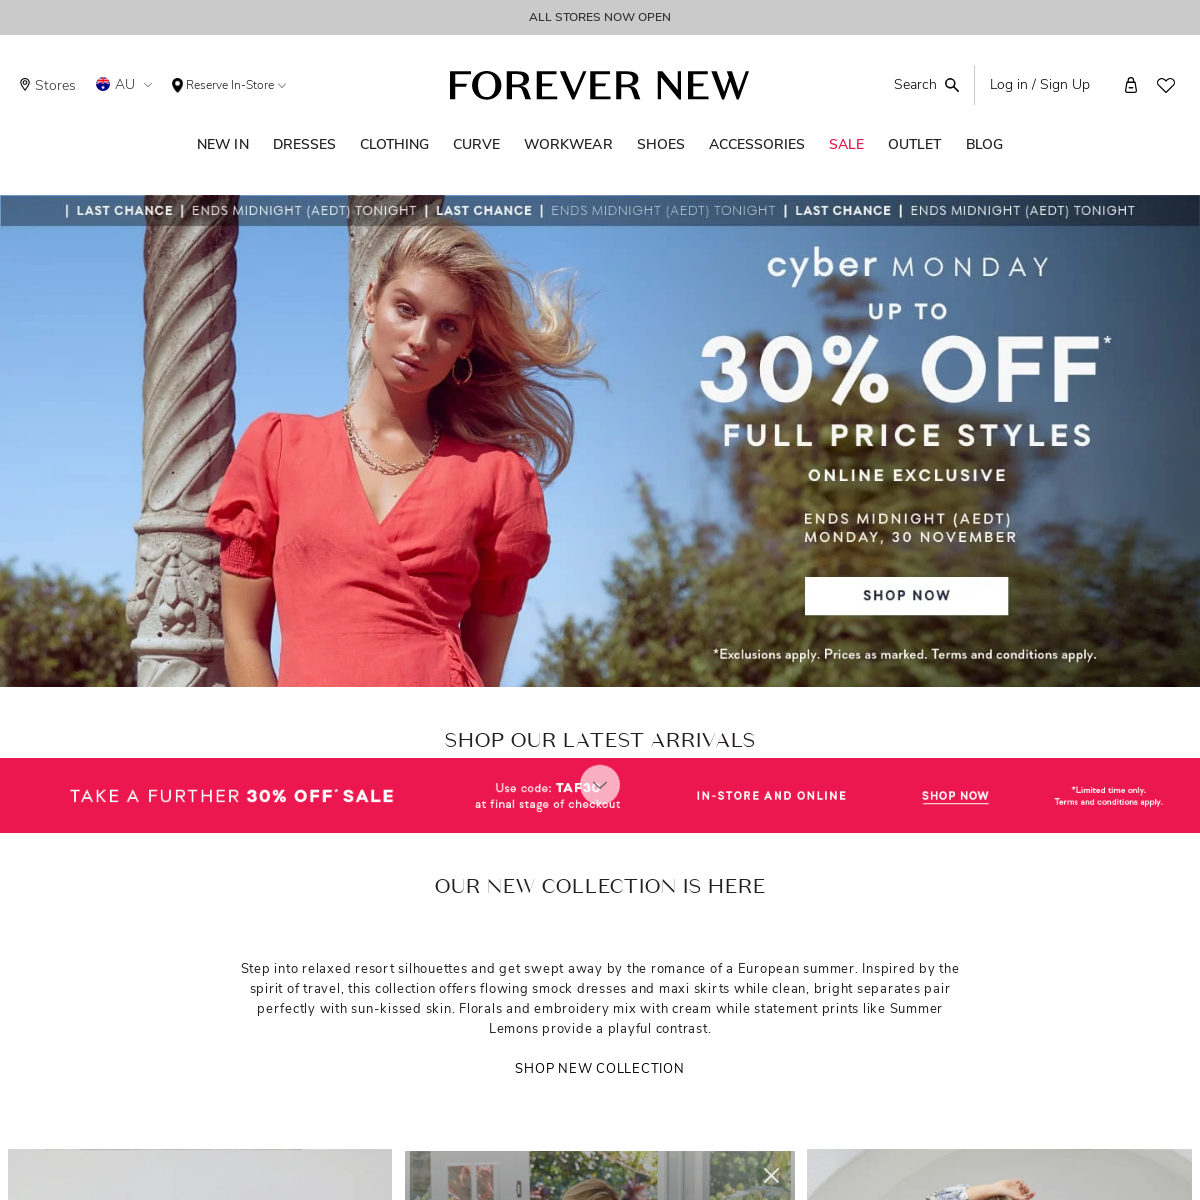 Women`s Clothing - Fashion, Dresses & Outfits - Forever New